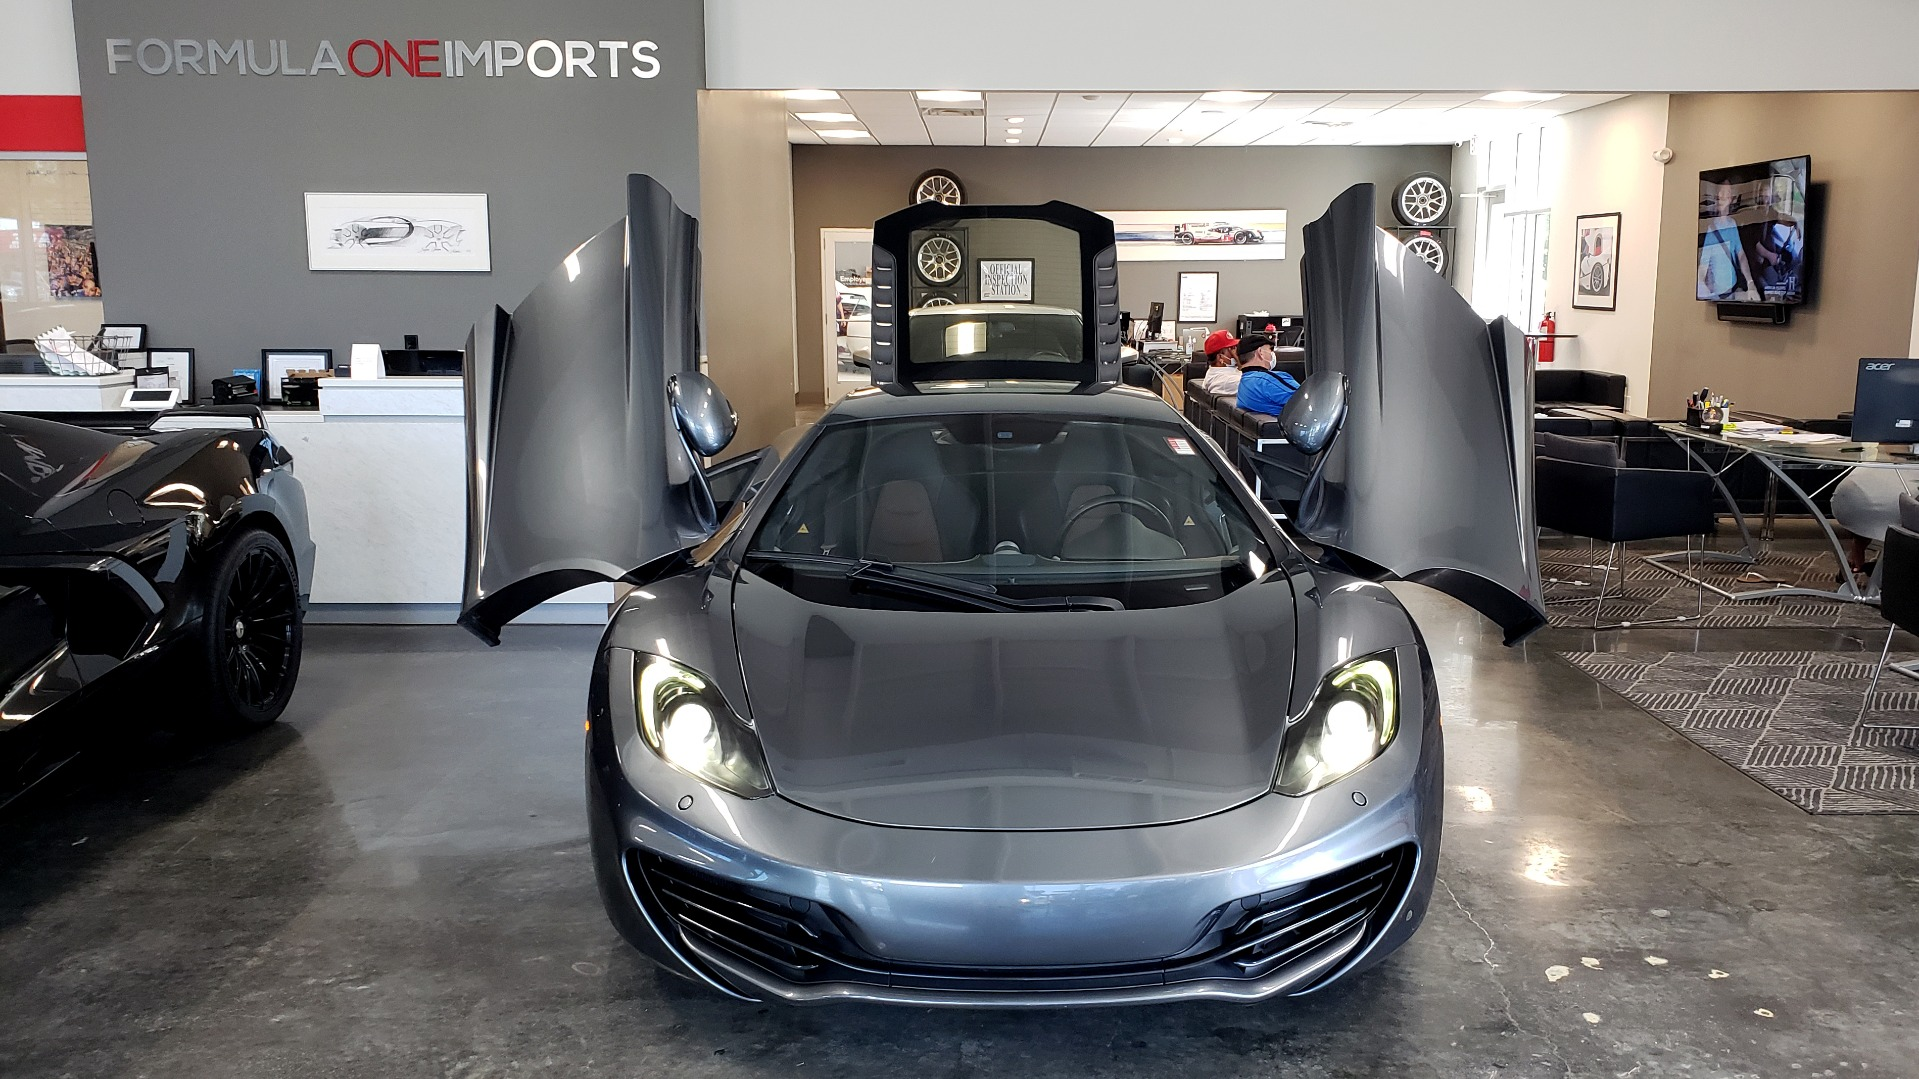 Used 2012 McLaren MP4-12C COUPE / 3.8 L V8 592HP / AUTO / NAV / CCB / LOW MILES for sale $97,999 at Formula Imports in Charlotte NC 28227 85